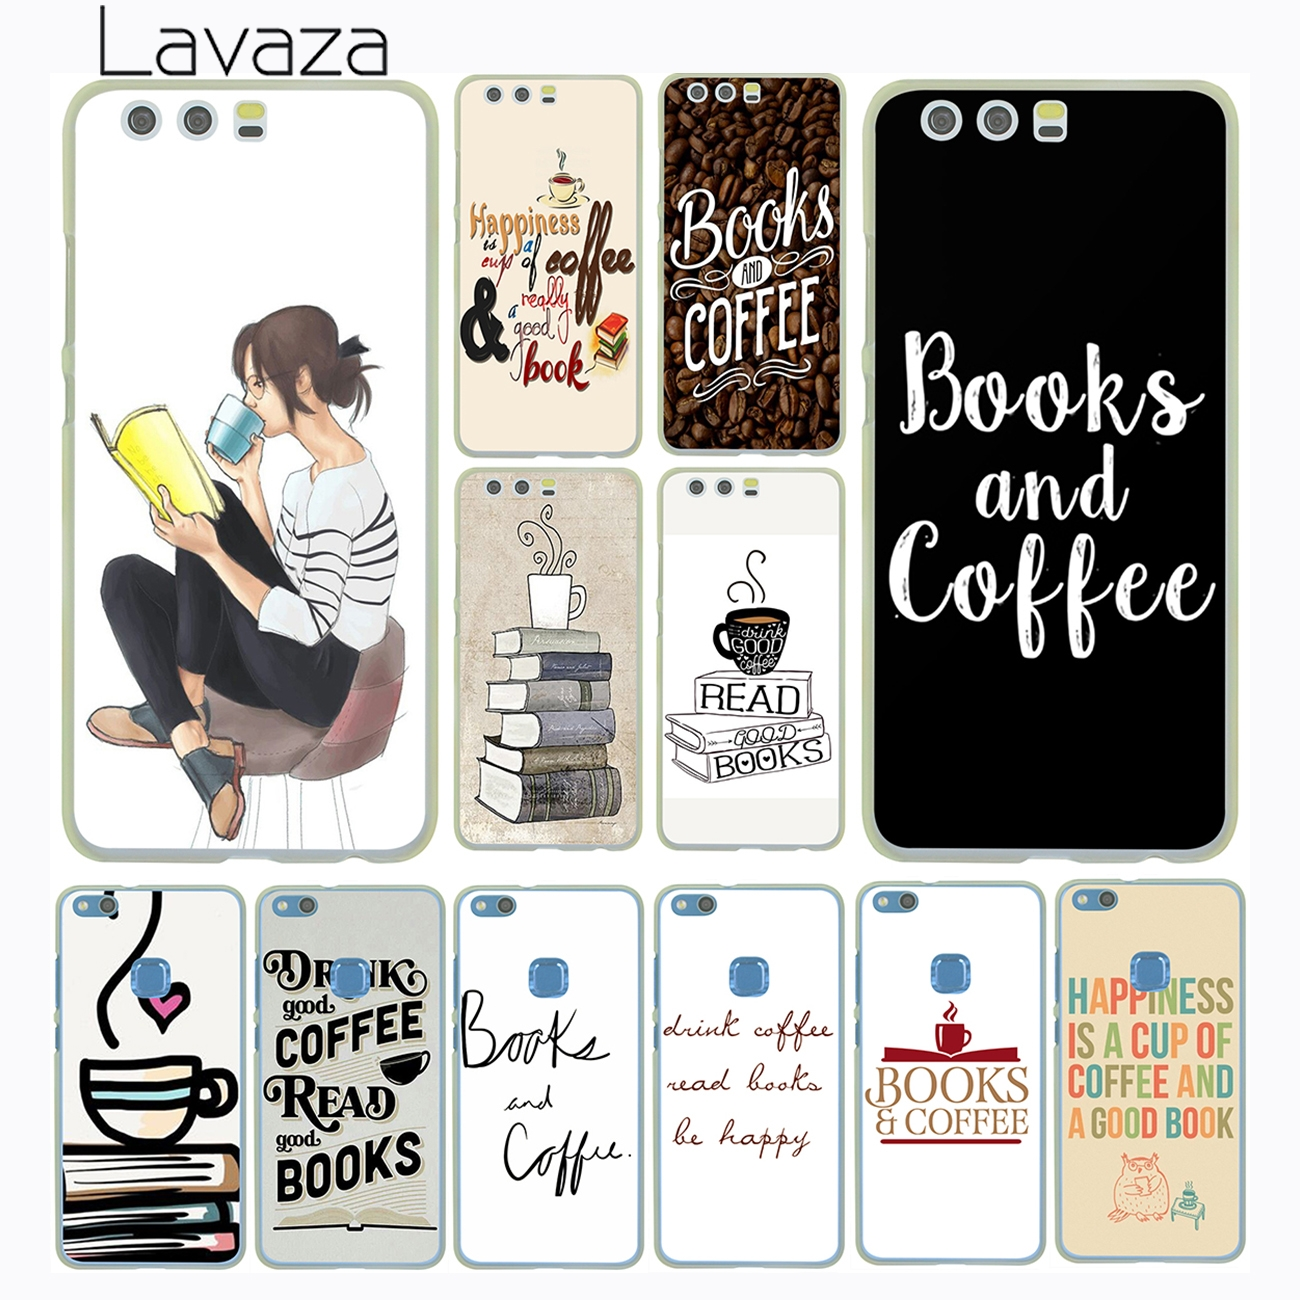 Invert color jpg online - Lavaza Books And Coffee Inverted Mck Print Hard Case Cover For Huawei P8 P9 P10 Lite